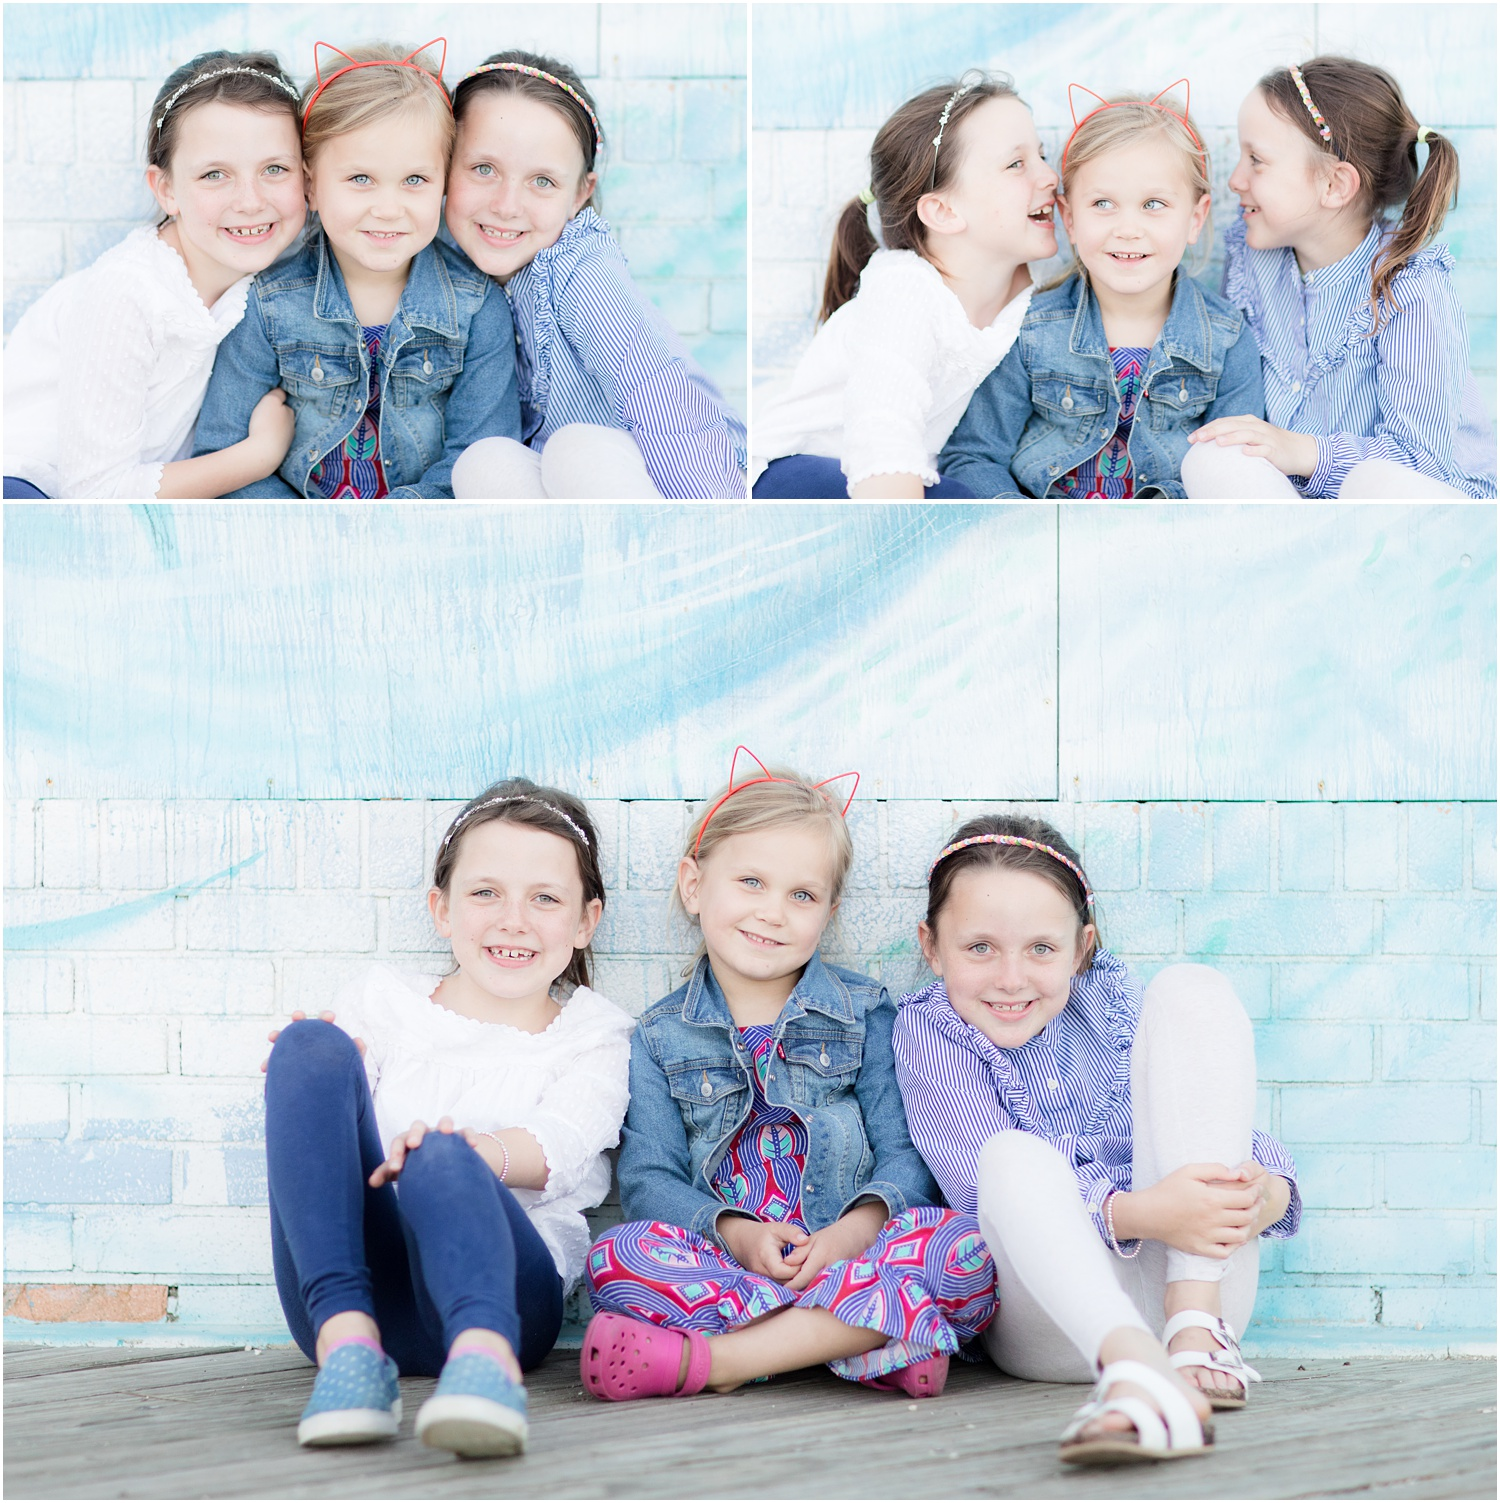 close up photos of 3 girls on the boardwalk in Asbury Park.